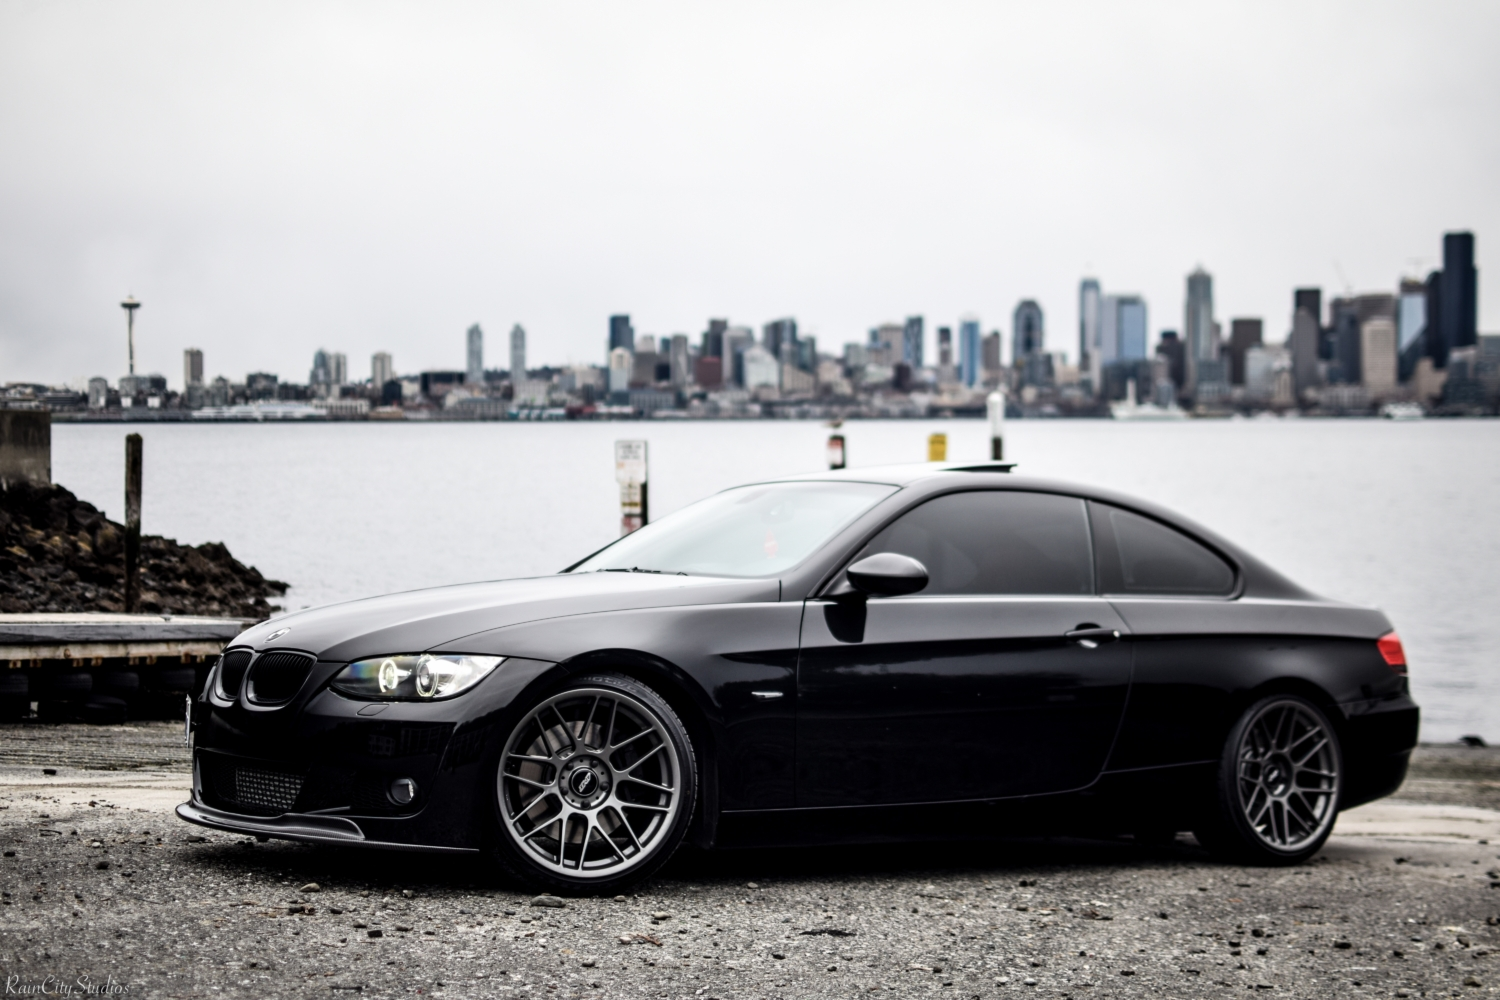 400awhp E92 Bmw 335xi Prowls The Mean Streets Of Wa